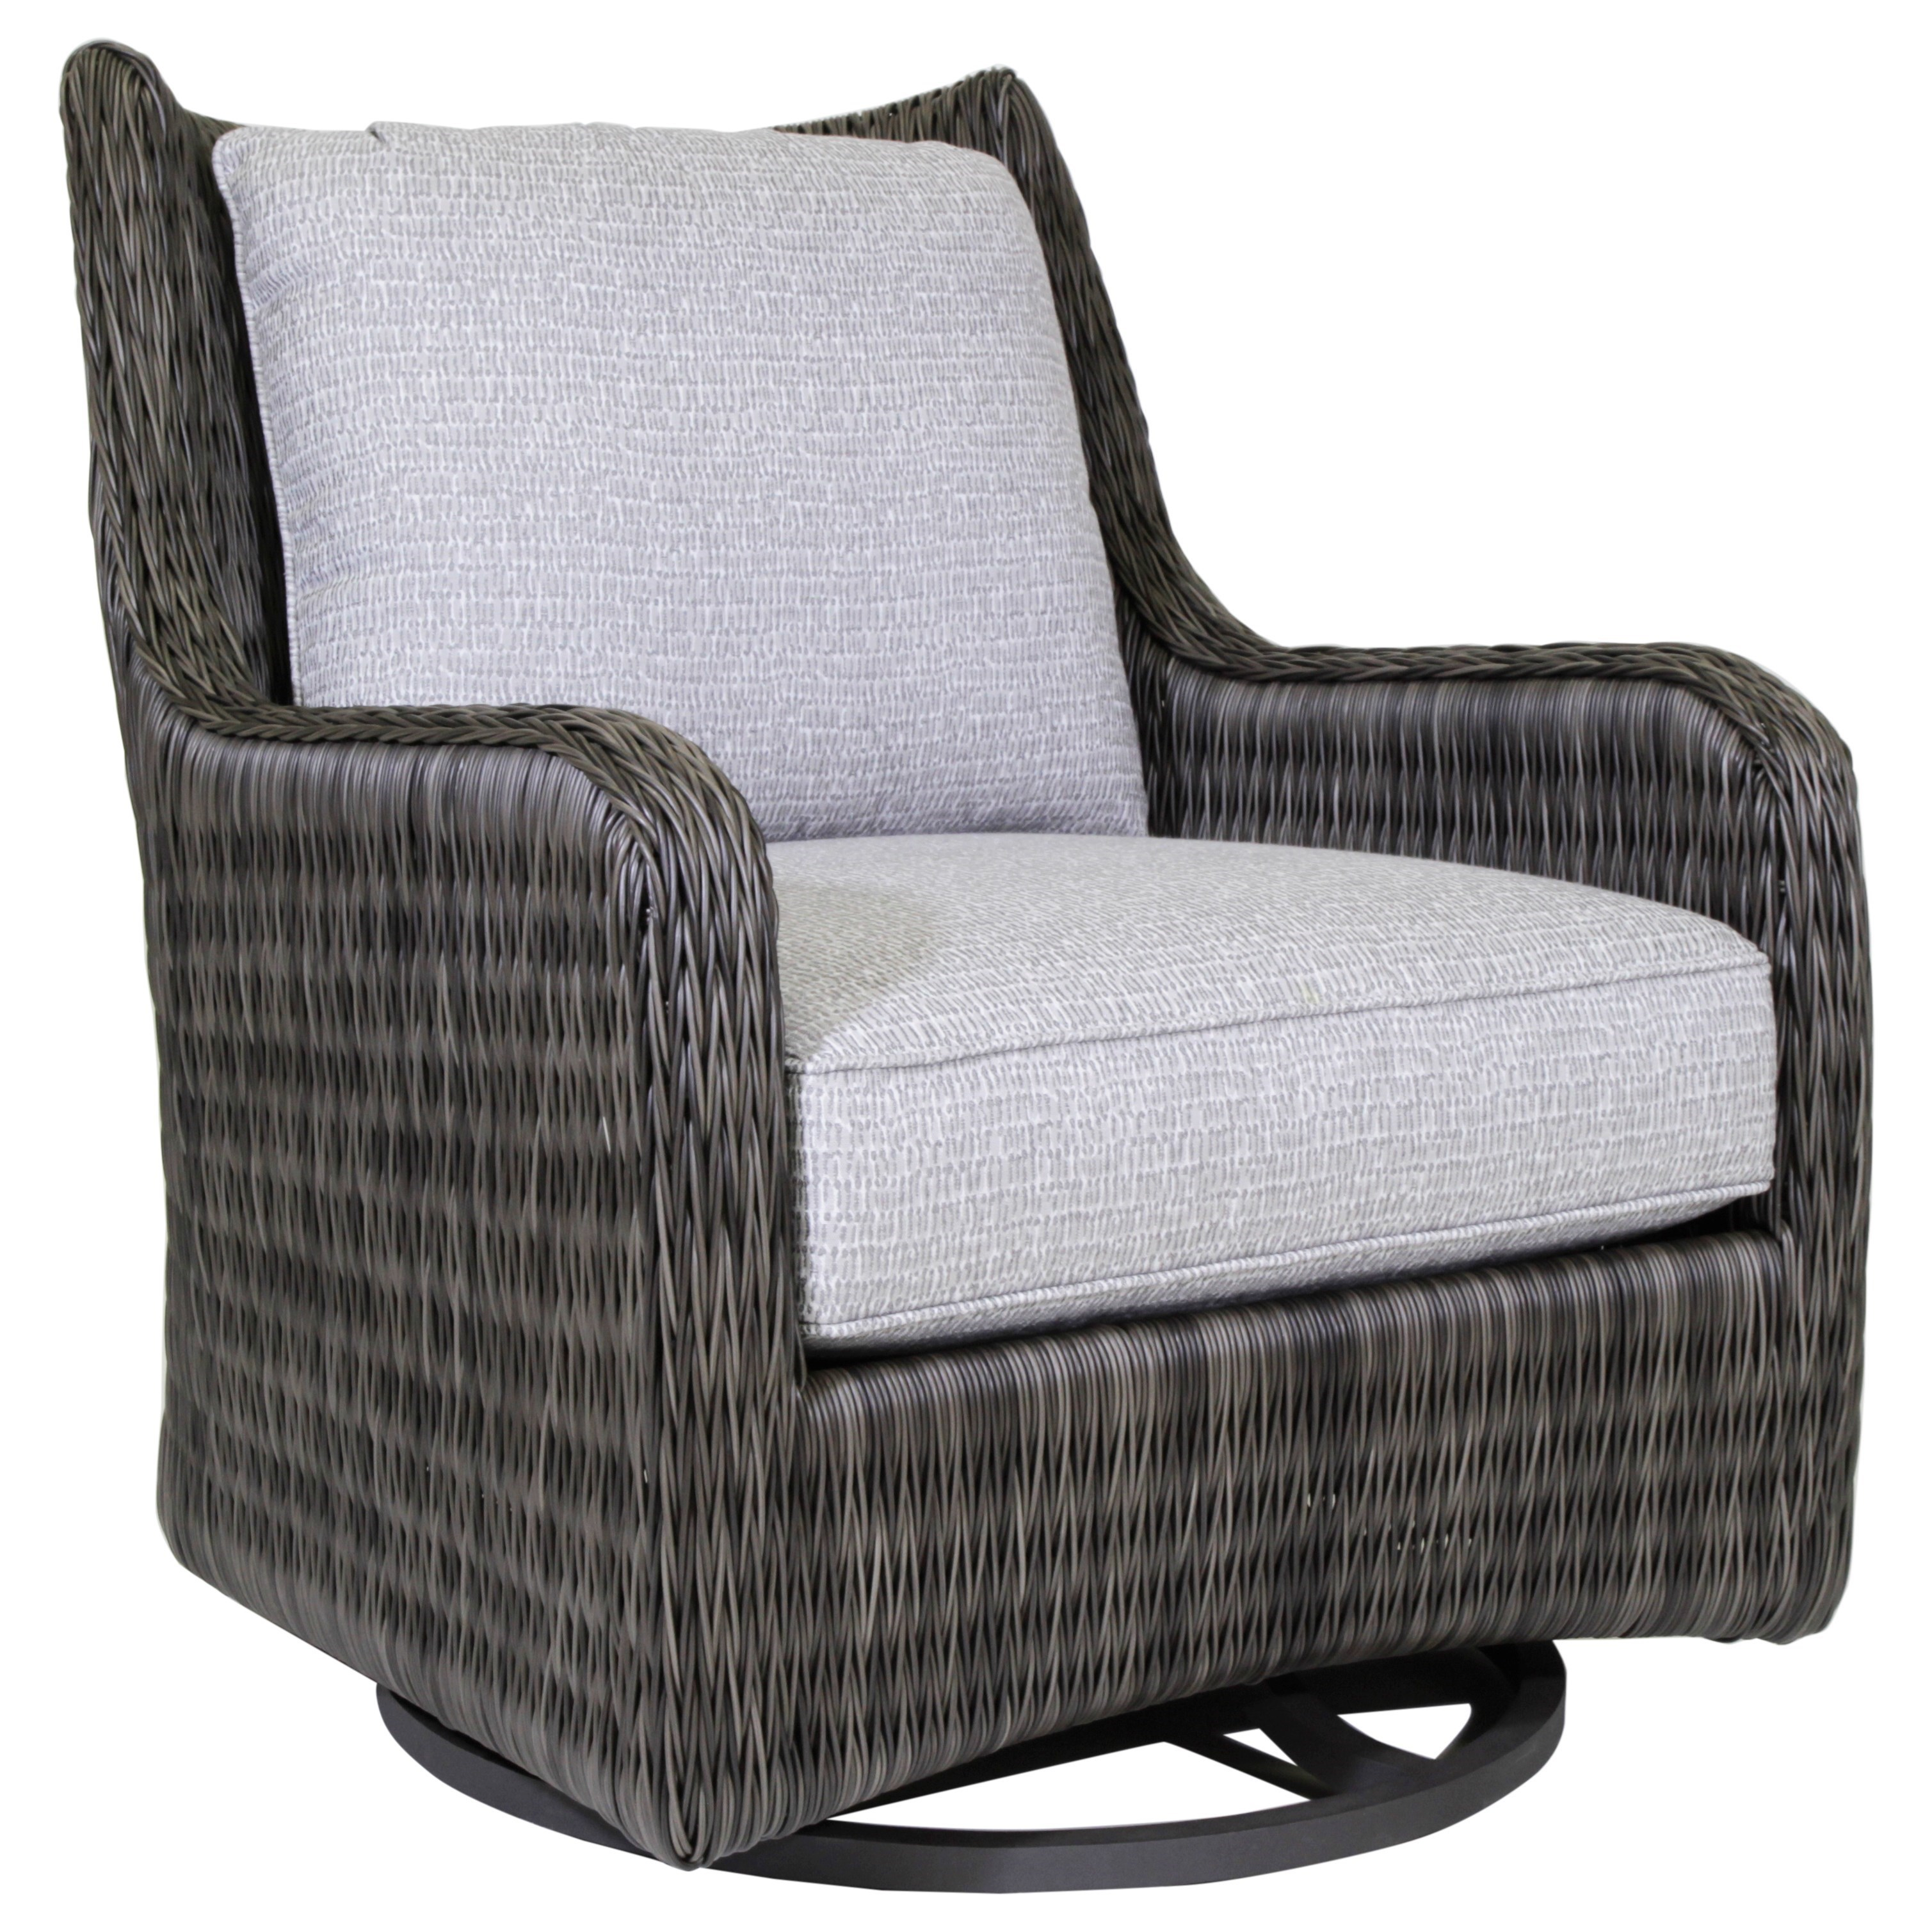 Cypress Point Ocean Terrace Outdoor Swivel Glider by Tommy Bahama Outdoor Living at C. S. Wo & Sons Hawaii